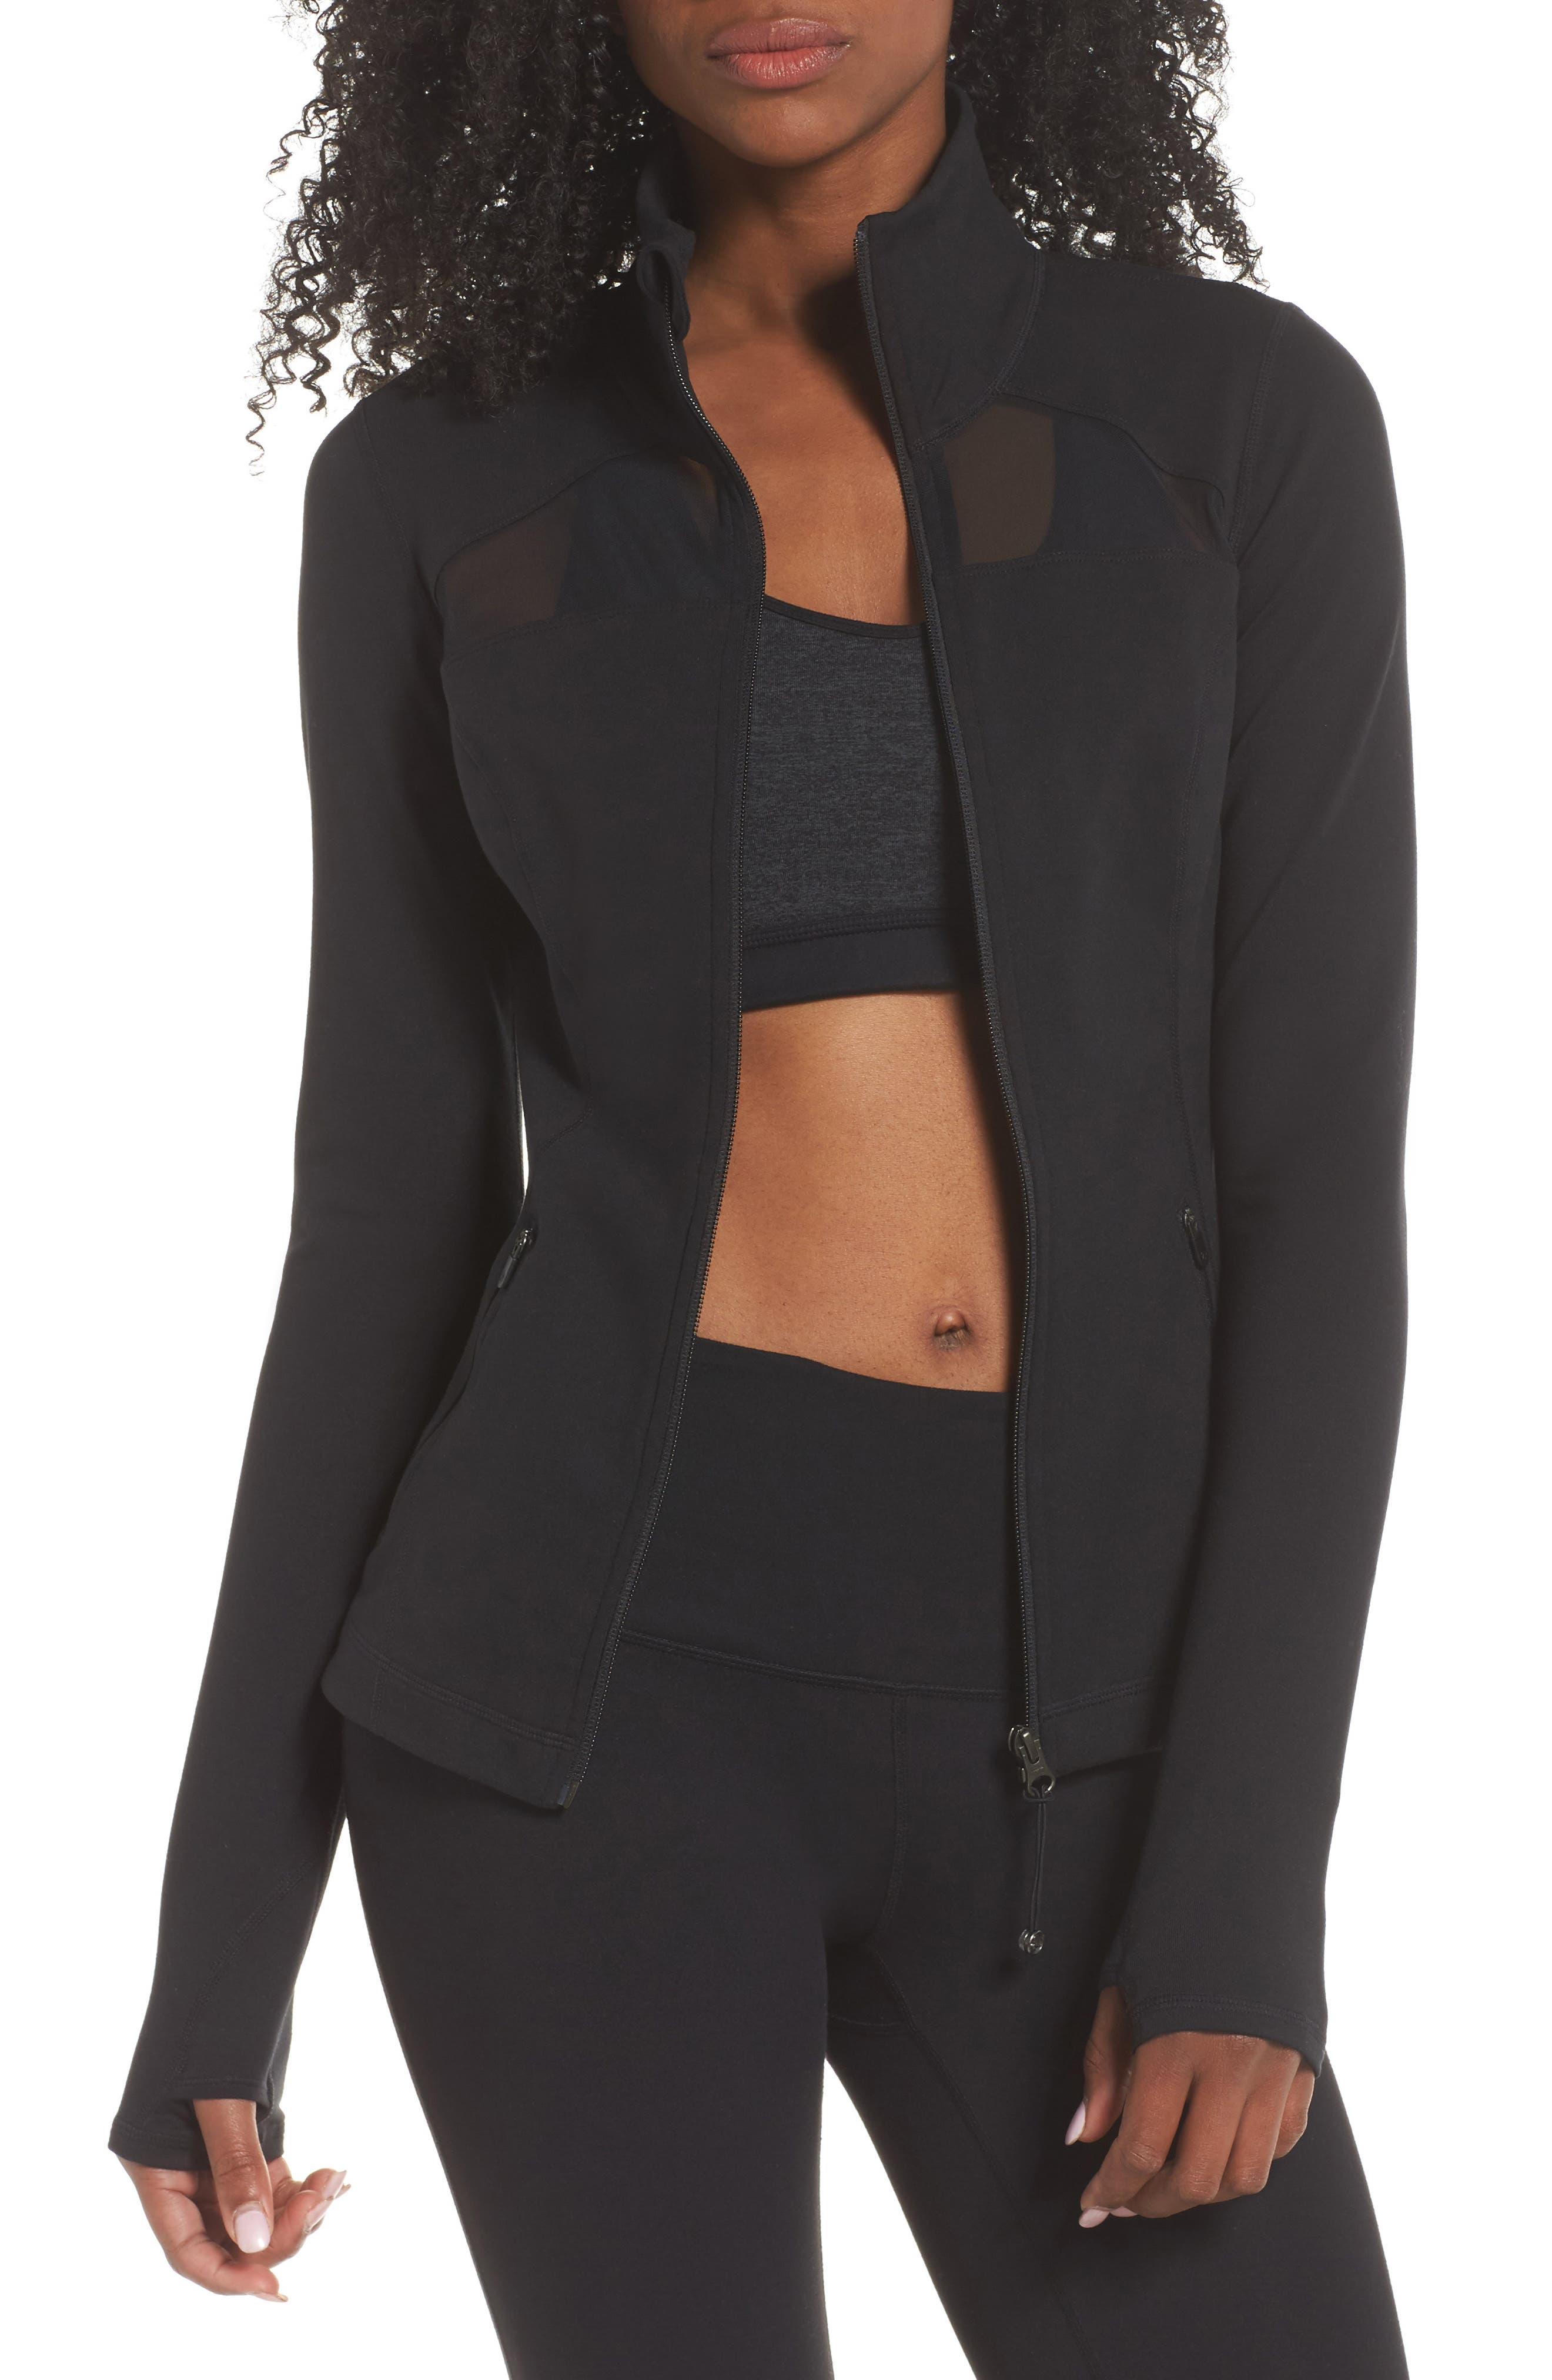 Revolve Jacket,                             Main thumbnail 1, color,                             001